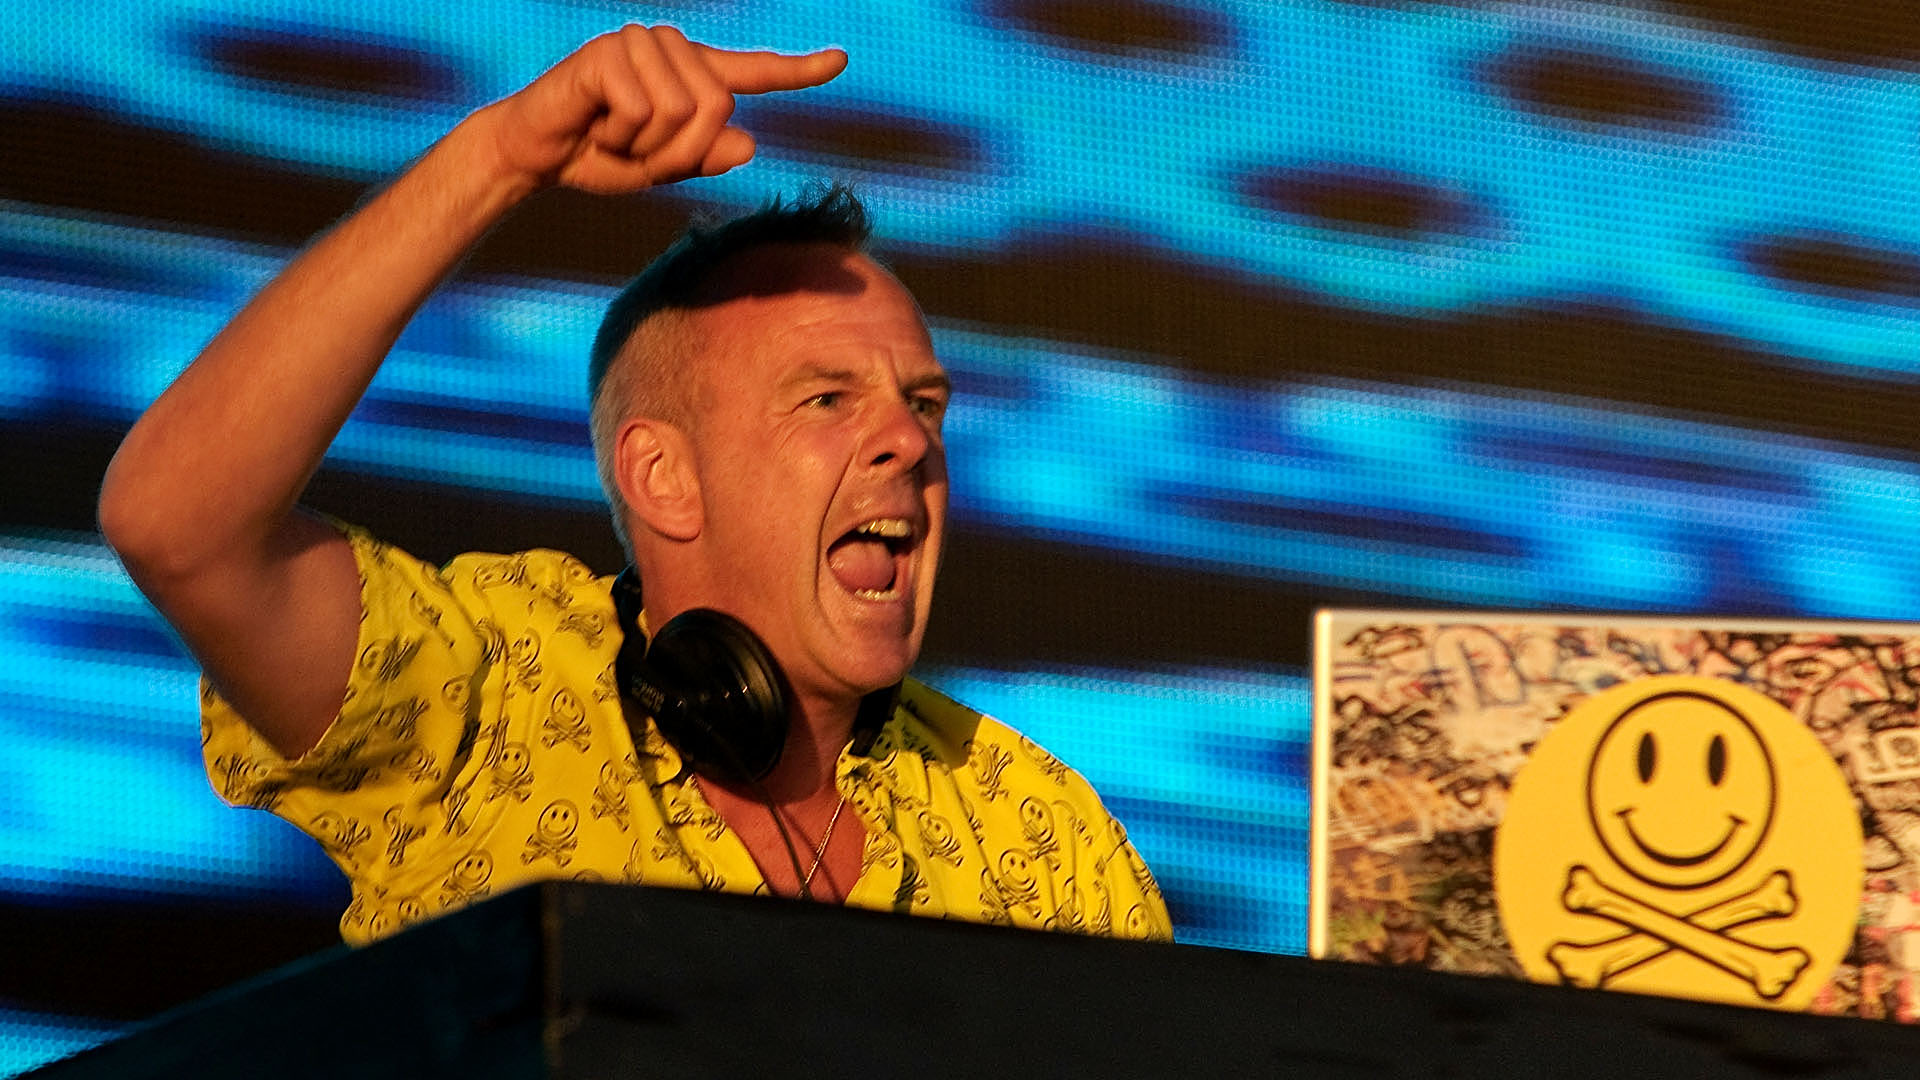 Fatboy Slim-Villa Mix SP 2014-PROMO PHOTOS OFFICIAL (HOME SLIDE)